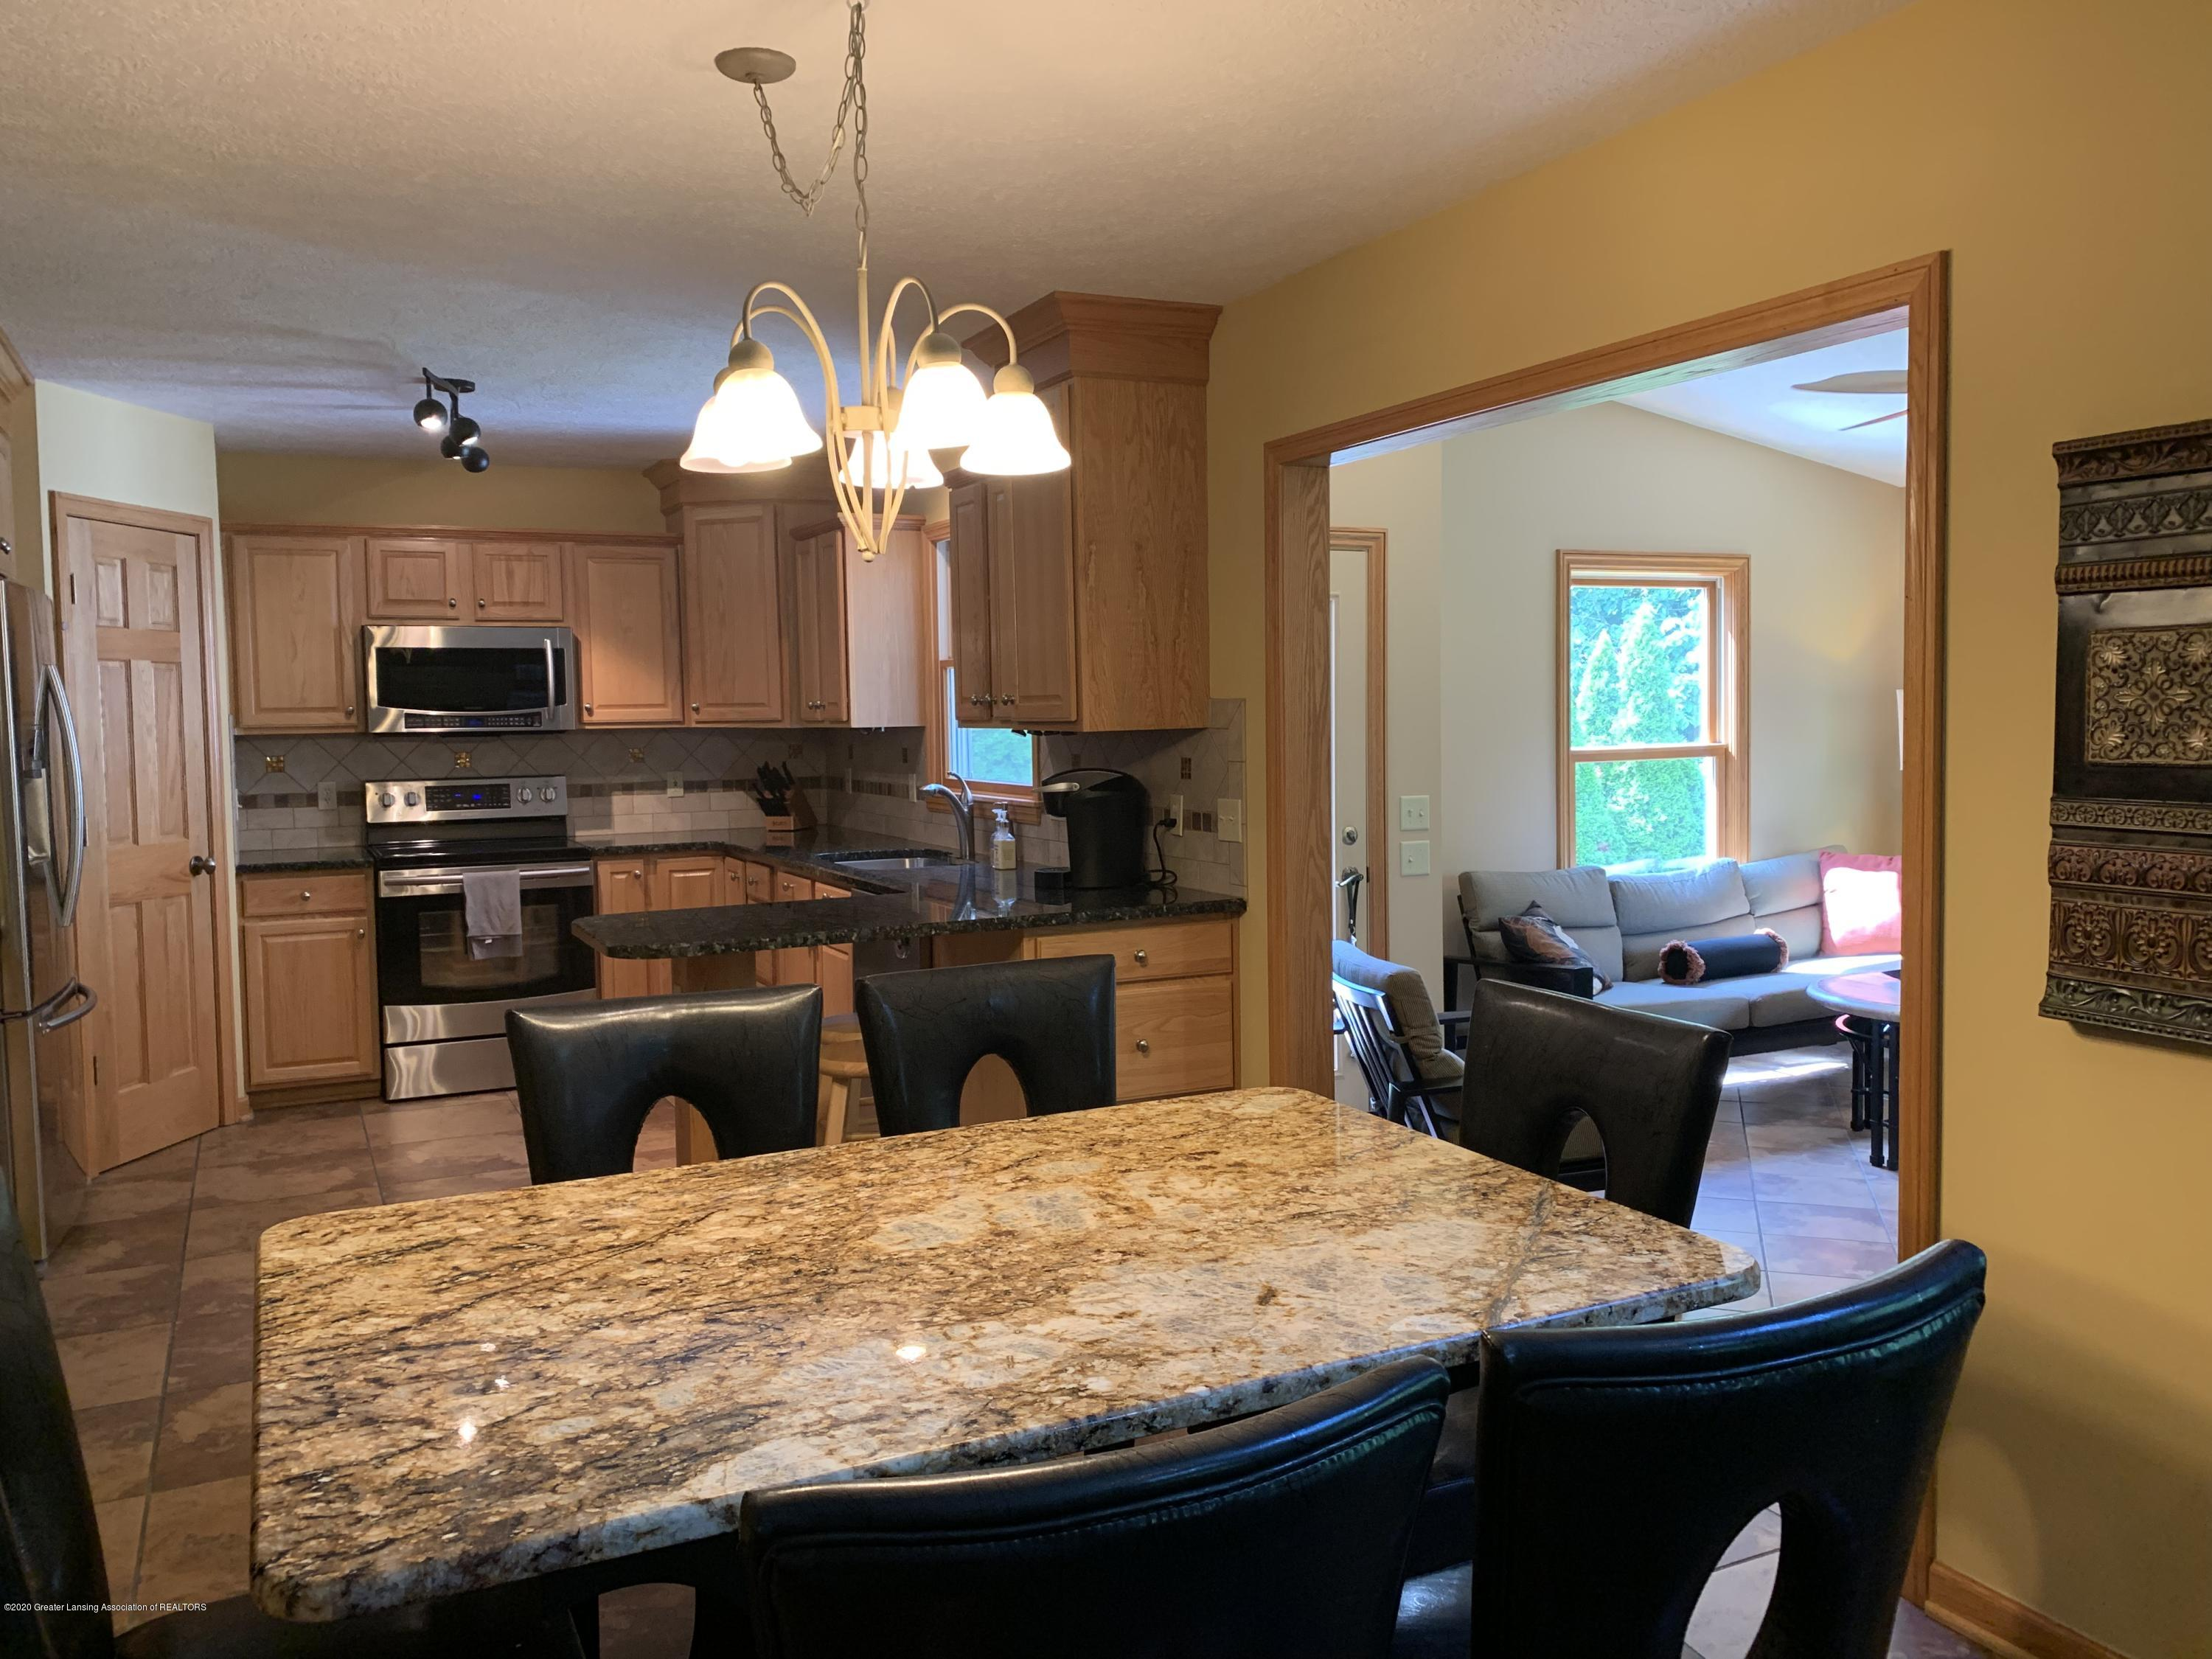 3150 Crofton Dr - Kitchen - 15